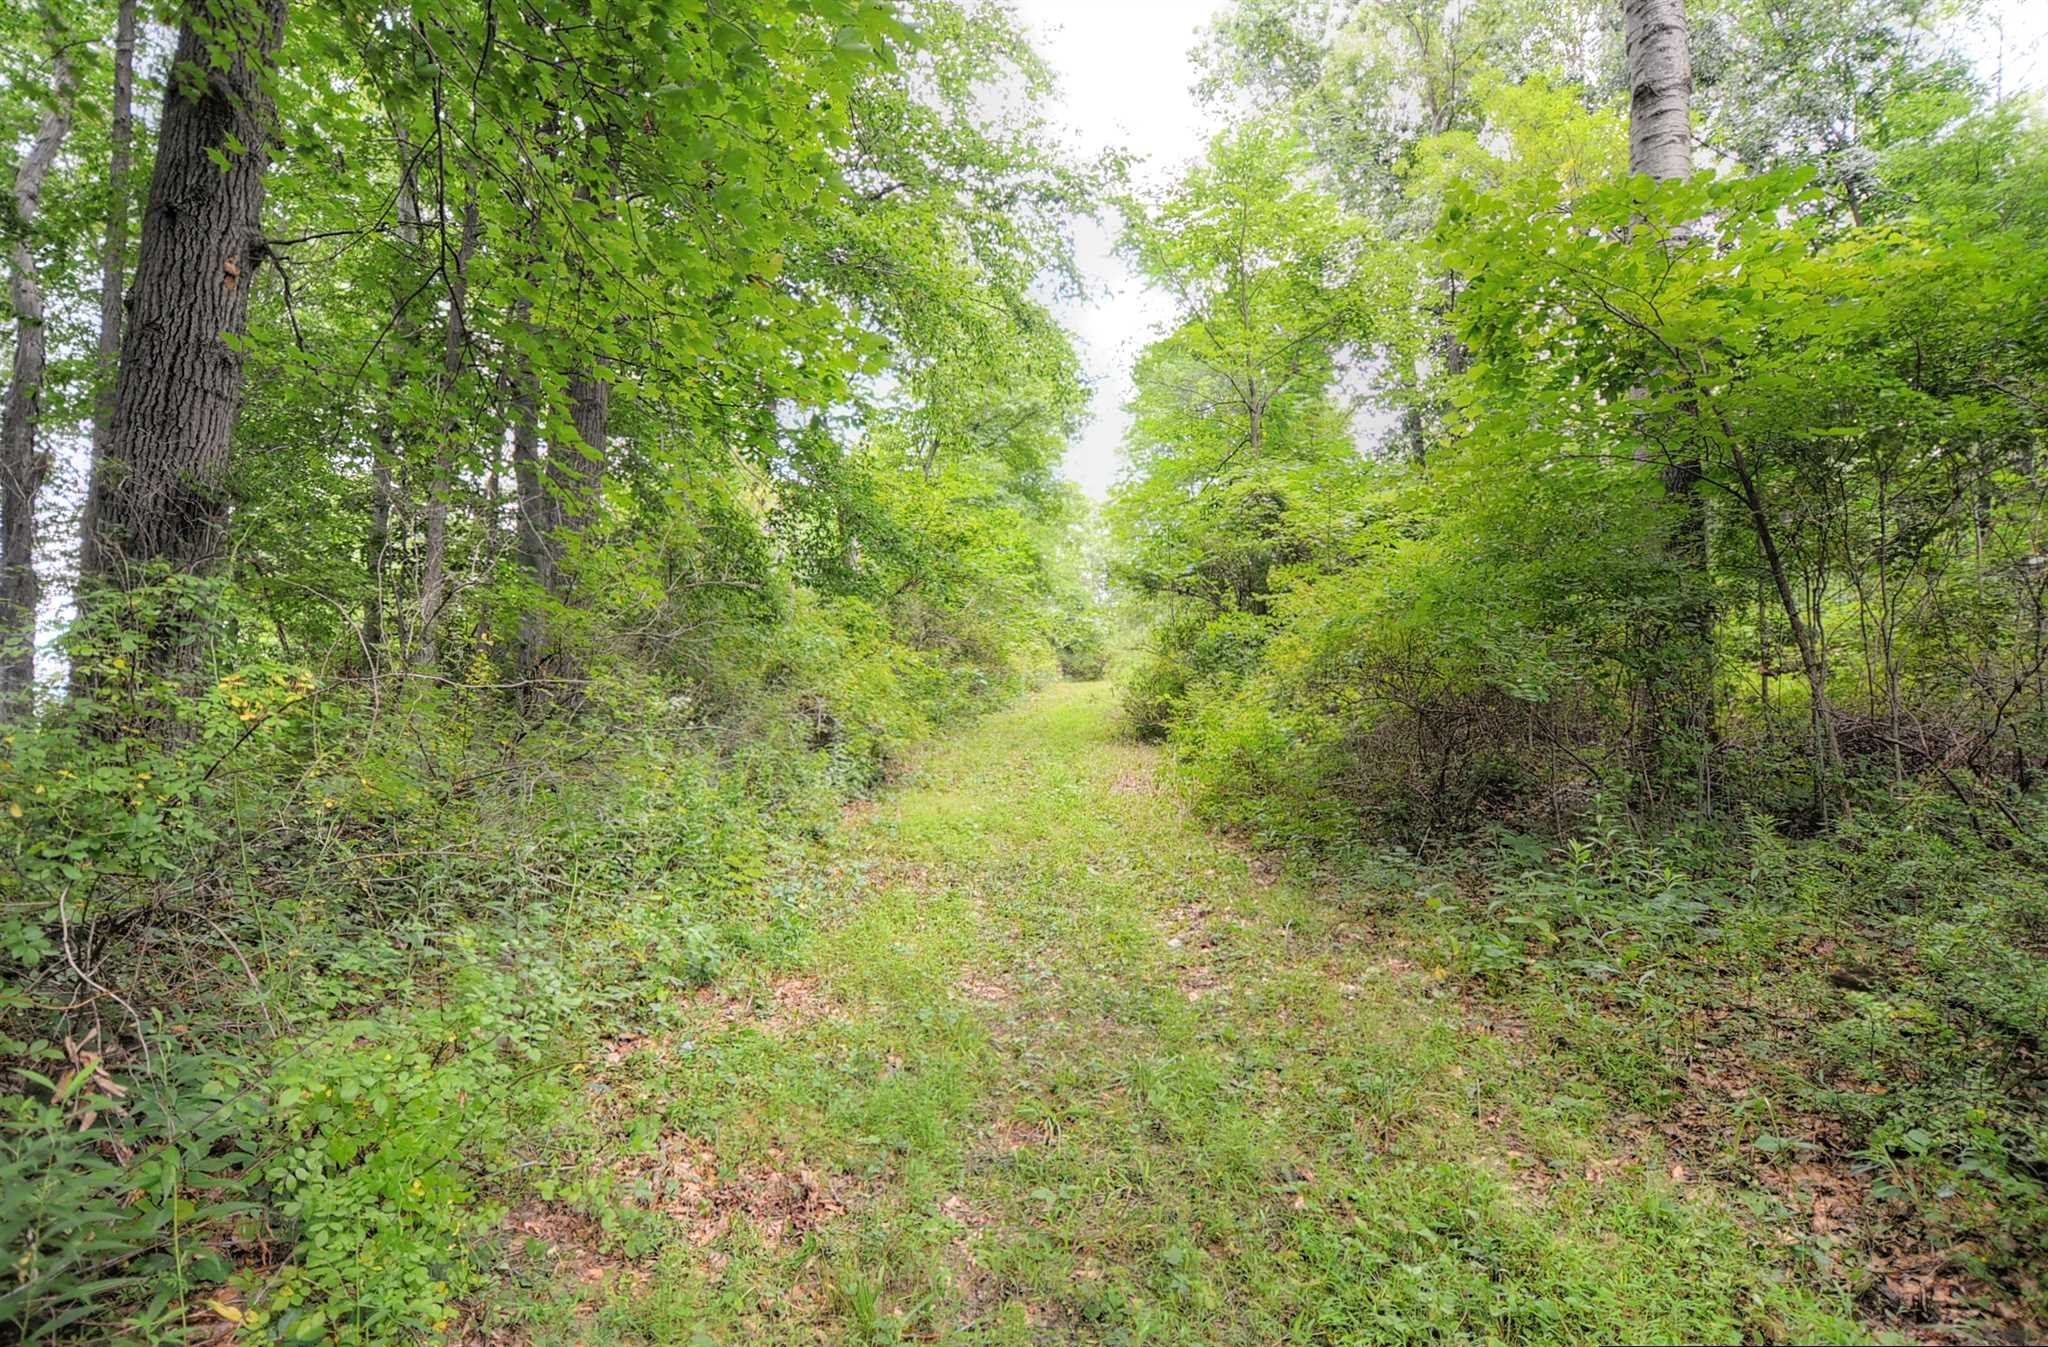 Additional photo for property listing at 438 ROUTE 199 438 ROUTE 199 Red Hook, New York 12571 United States